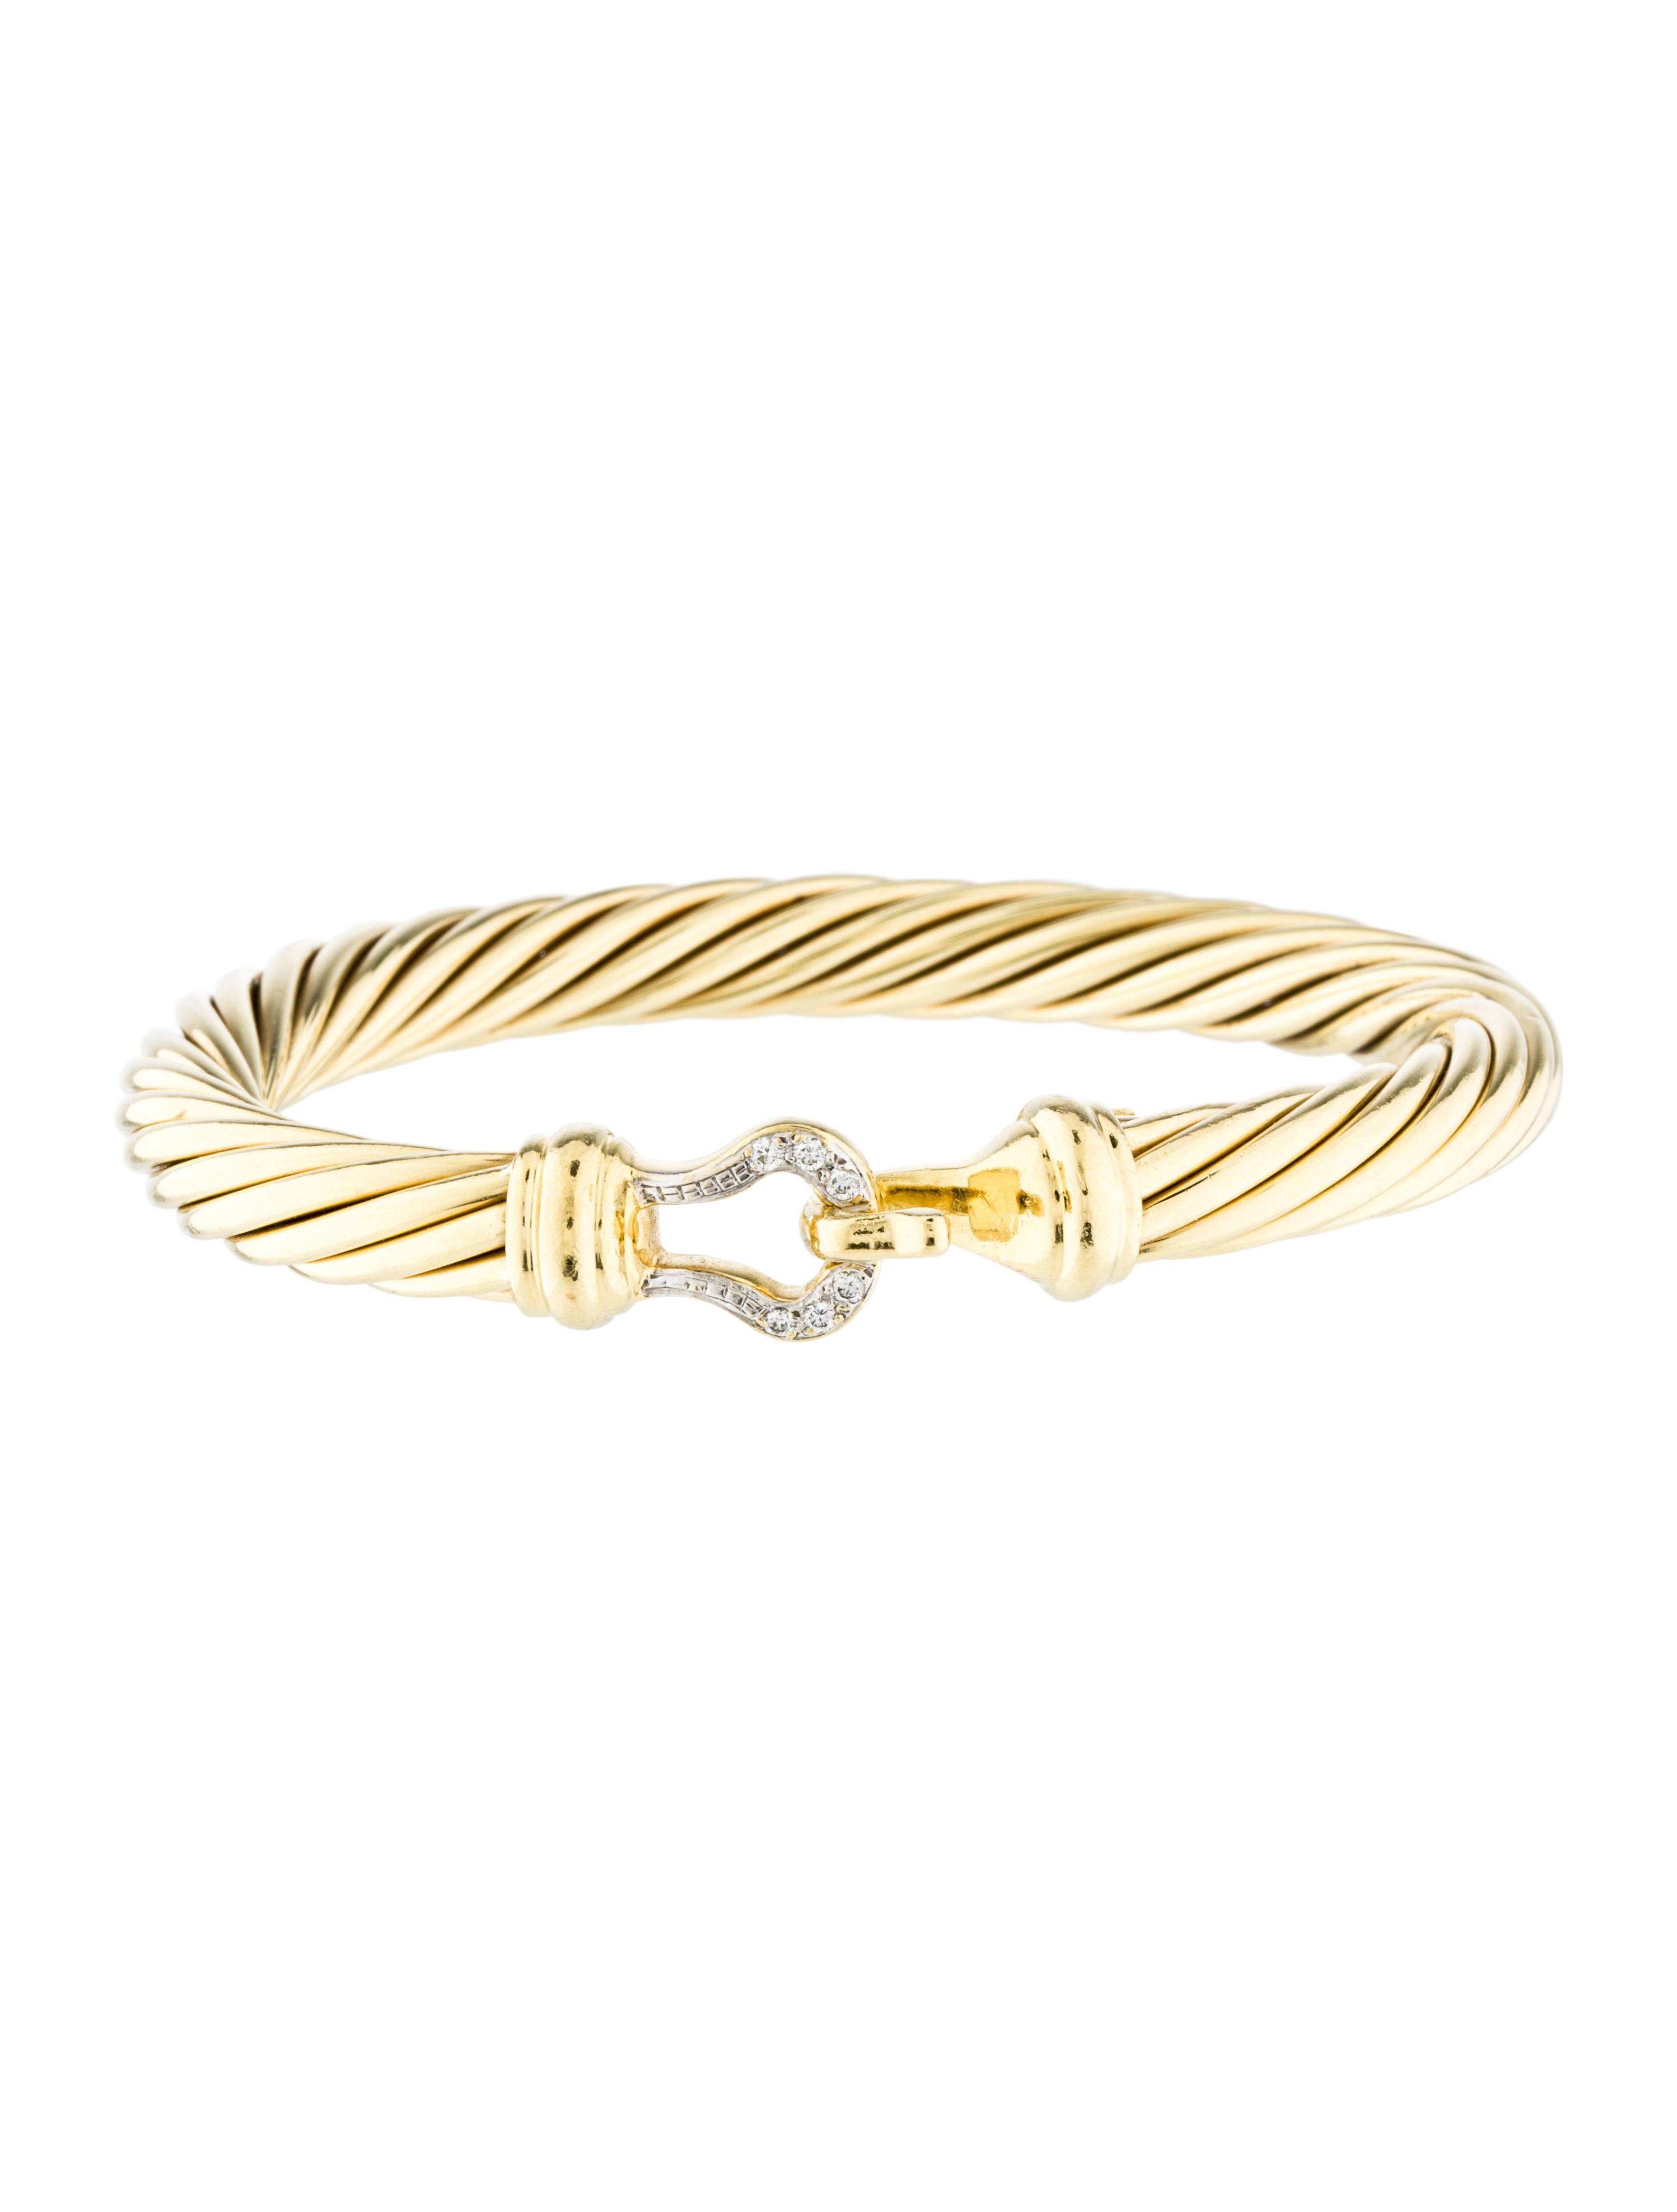 David yurman diamond buckle cable bracelet bracelets for David yurman inspired bracelet cable